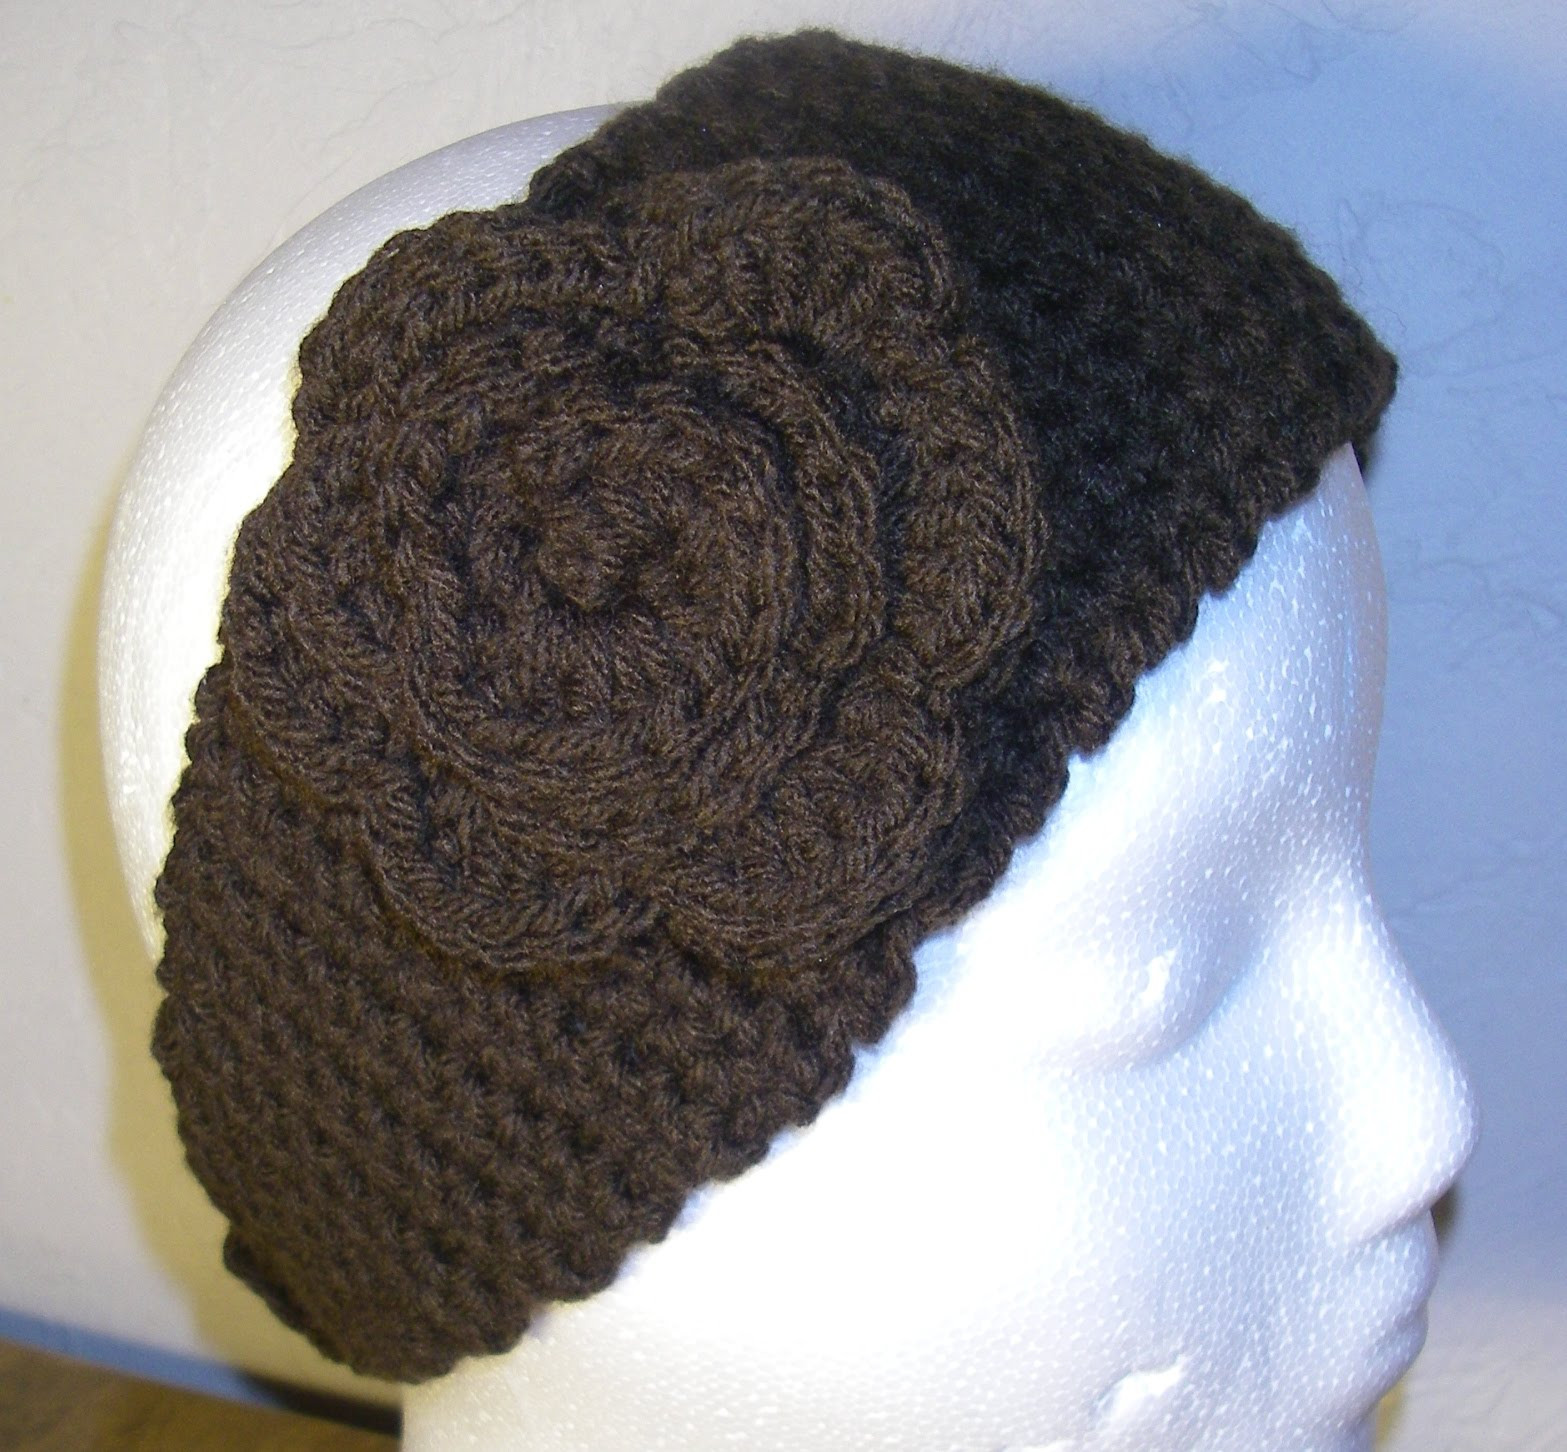 Crochet Ear Warmer Inspirational Celestial S Creations Crocheted Headband Of Awesome 46 Pictures Crochet Ear Warmer